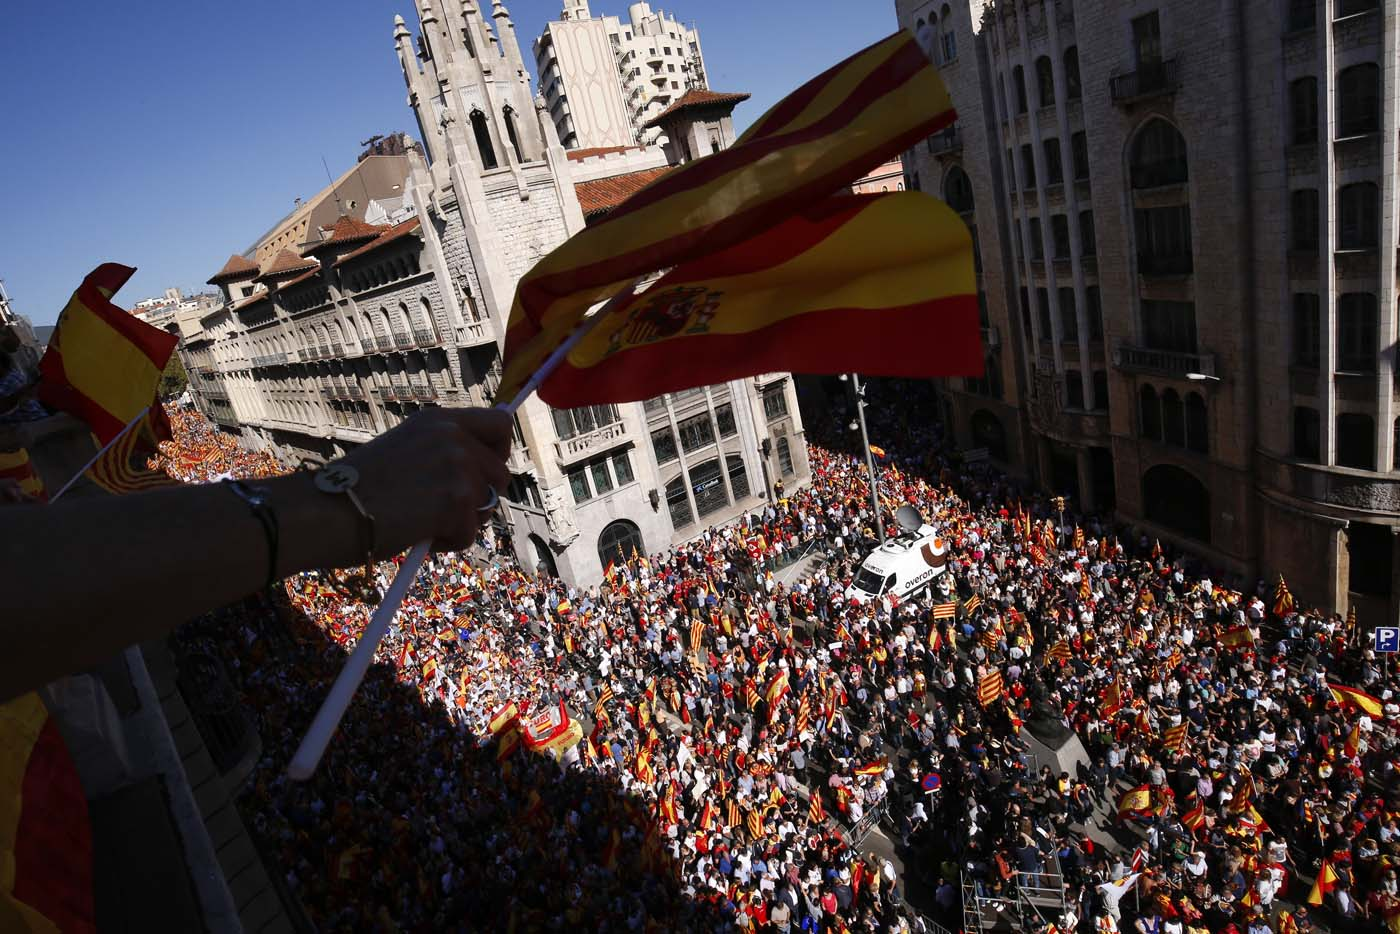 "Protesters hold Spanish flags from a balcony during a demonstration called by ""Societat Civil Catalana"" (Catalan Civil Society) to support the unity of Spain on October 8, 2017 in Barcelona. Spain braced for more protests despite tentative signs that the sides may be seeking to defuse the crisis after Madrid offered a first apology to Catalans injured by police during their outlawed independence vote. / AFP PHOTO / PAU BARRENA"